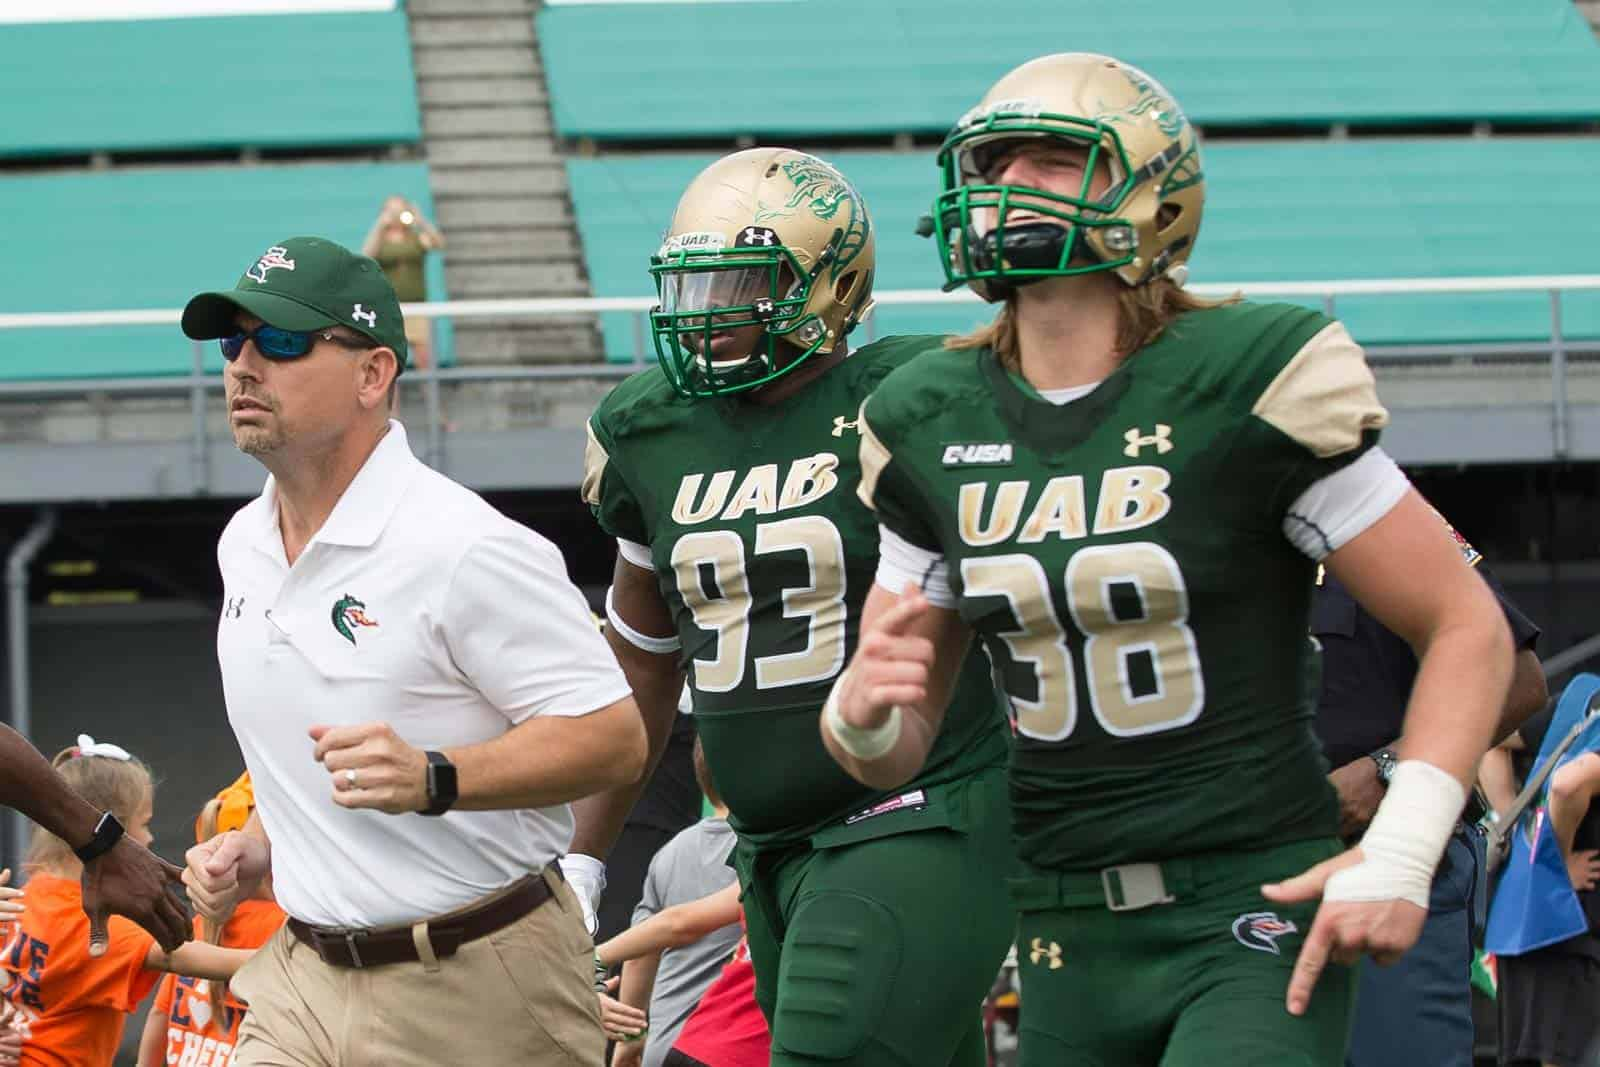 College Football Schedule: UAB